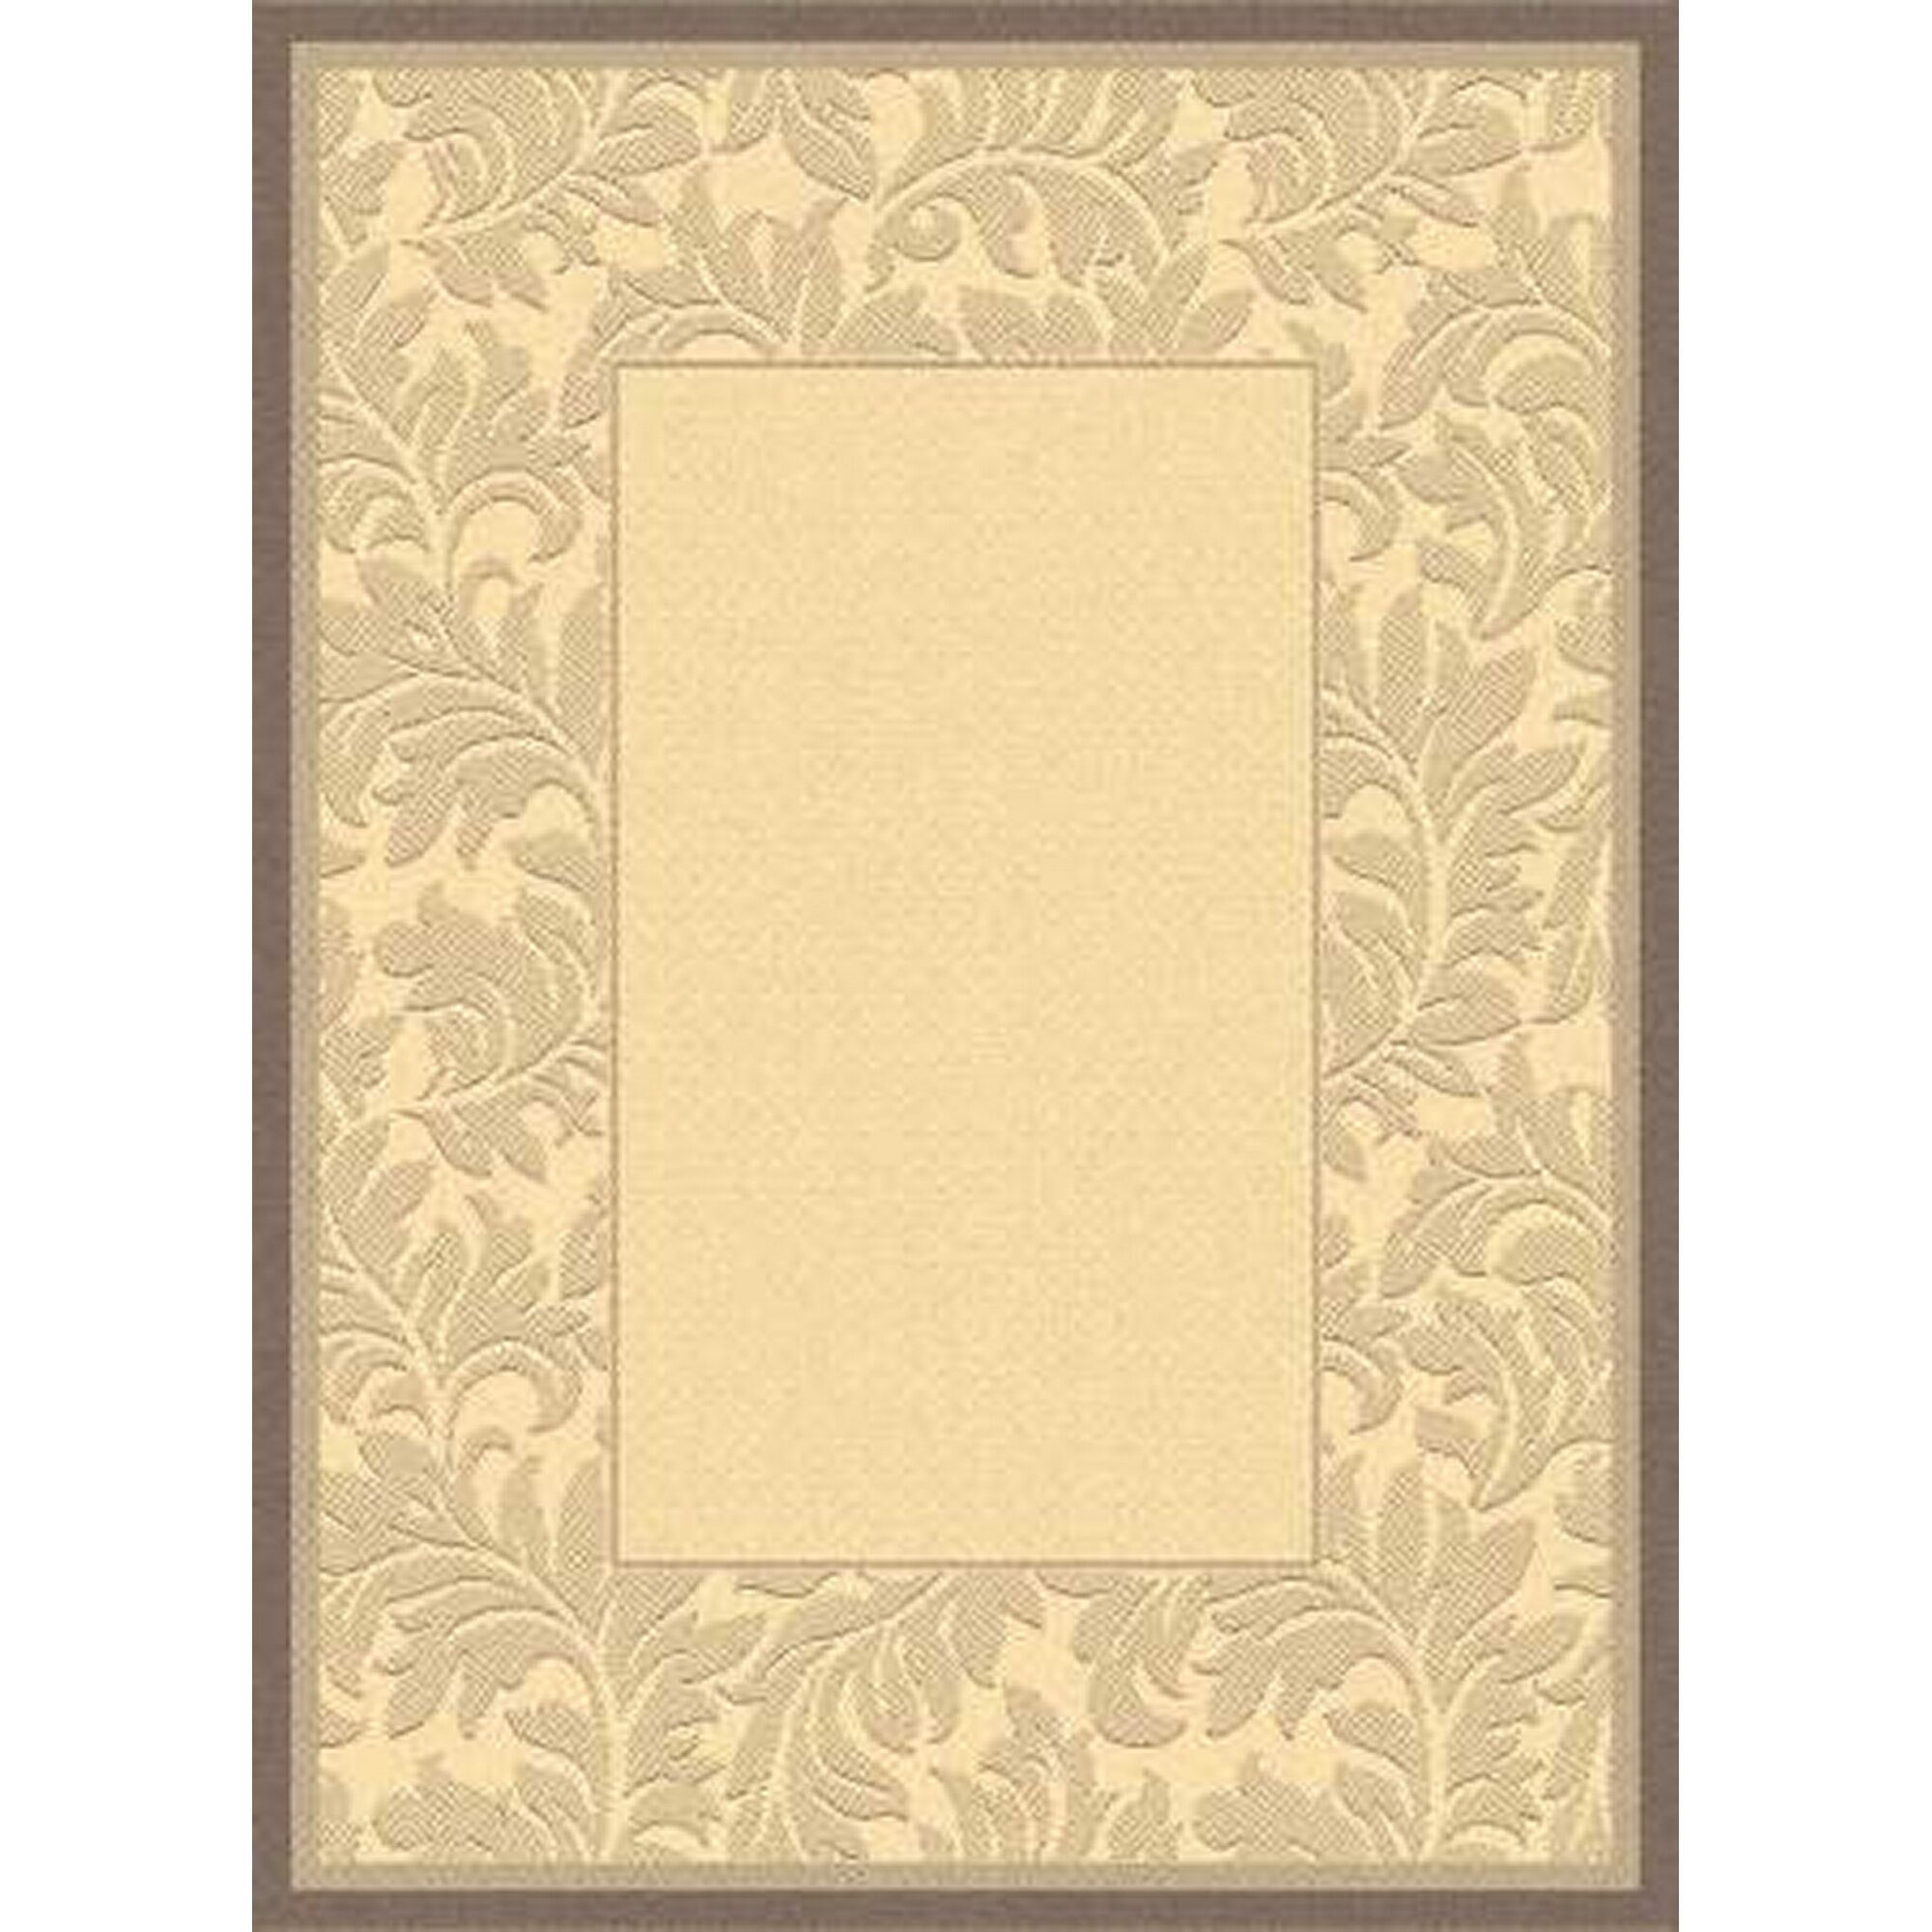 Fenmore Natural/Brown Outdoor Area Rug Rug Size: Rectangle 4' x 5'7